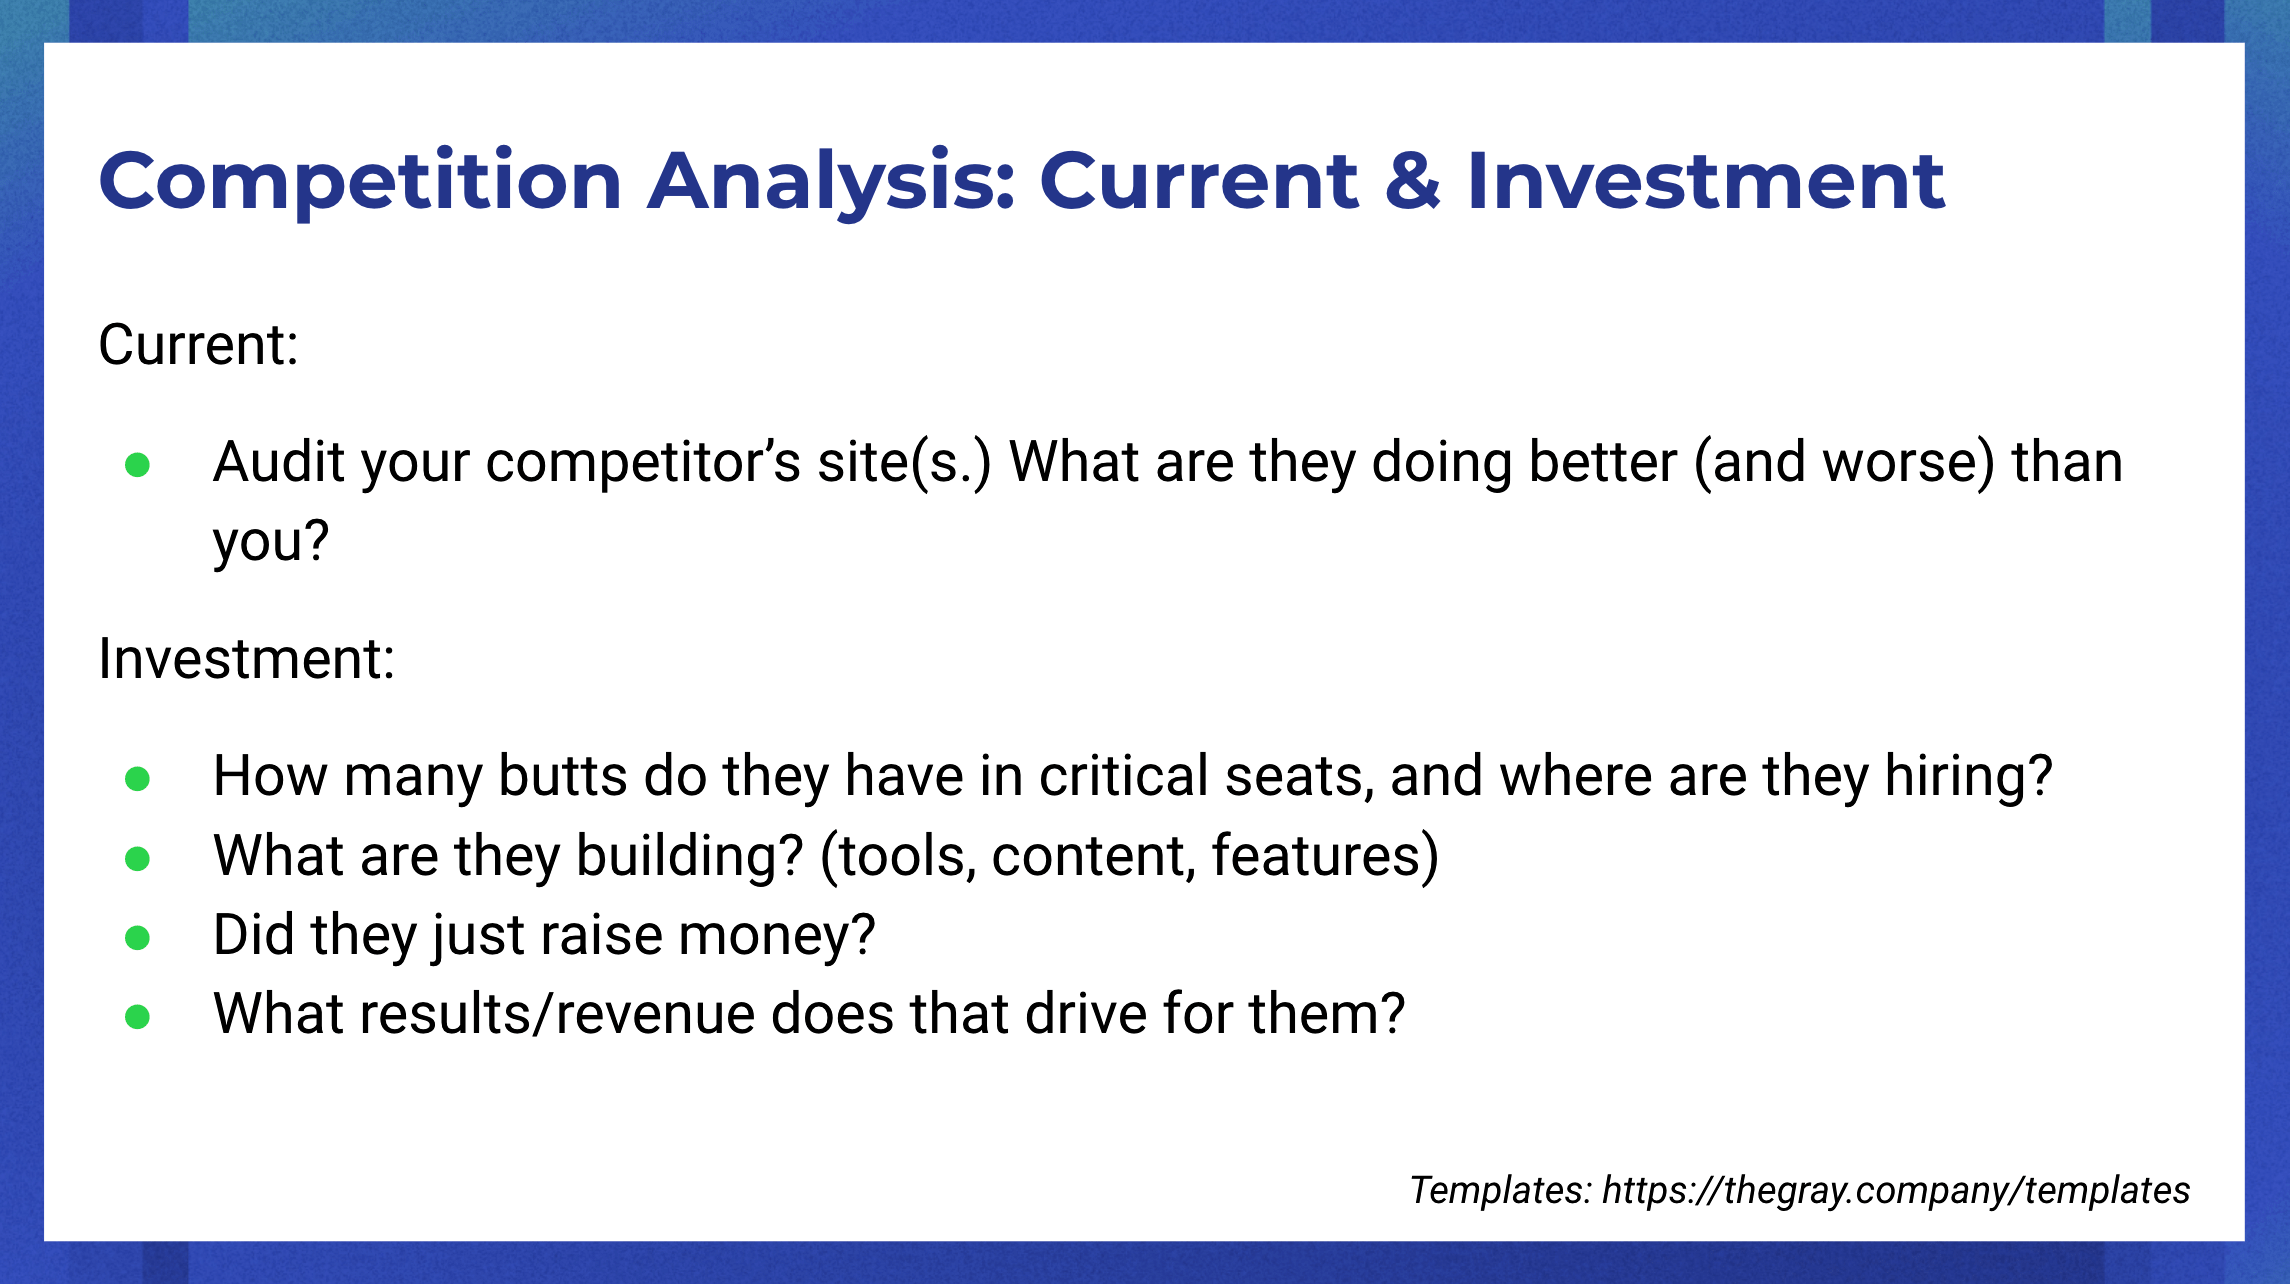 SEO competitive analysis: current & investment